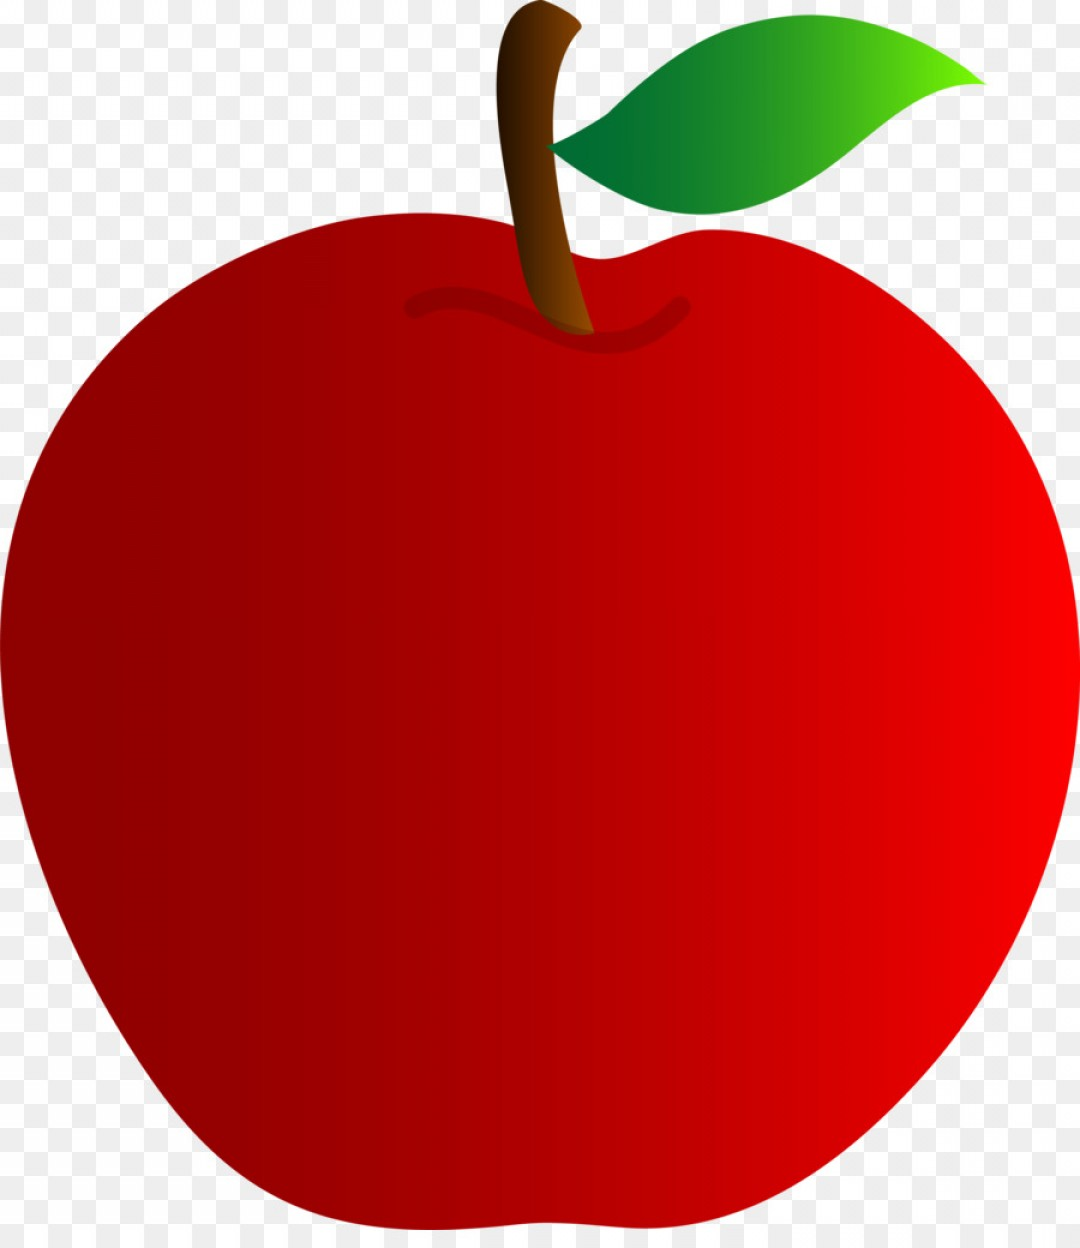 Png Snow White Apple Clip Art Cute Apple Cliparts.